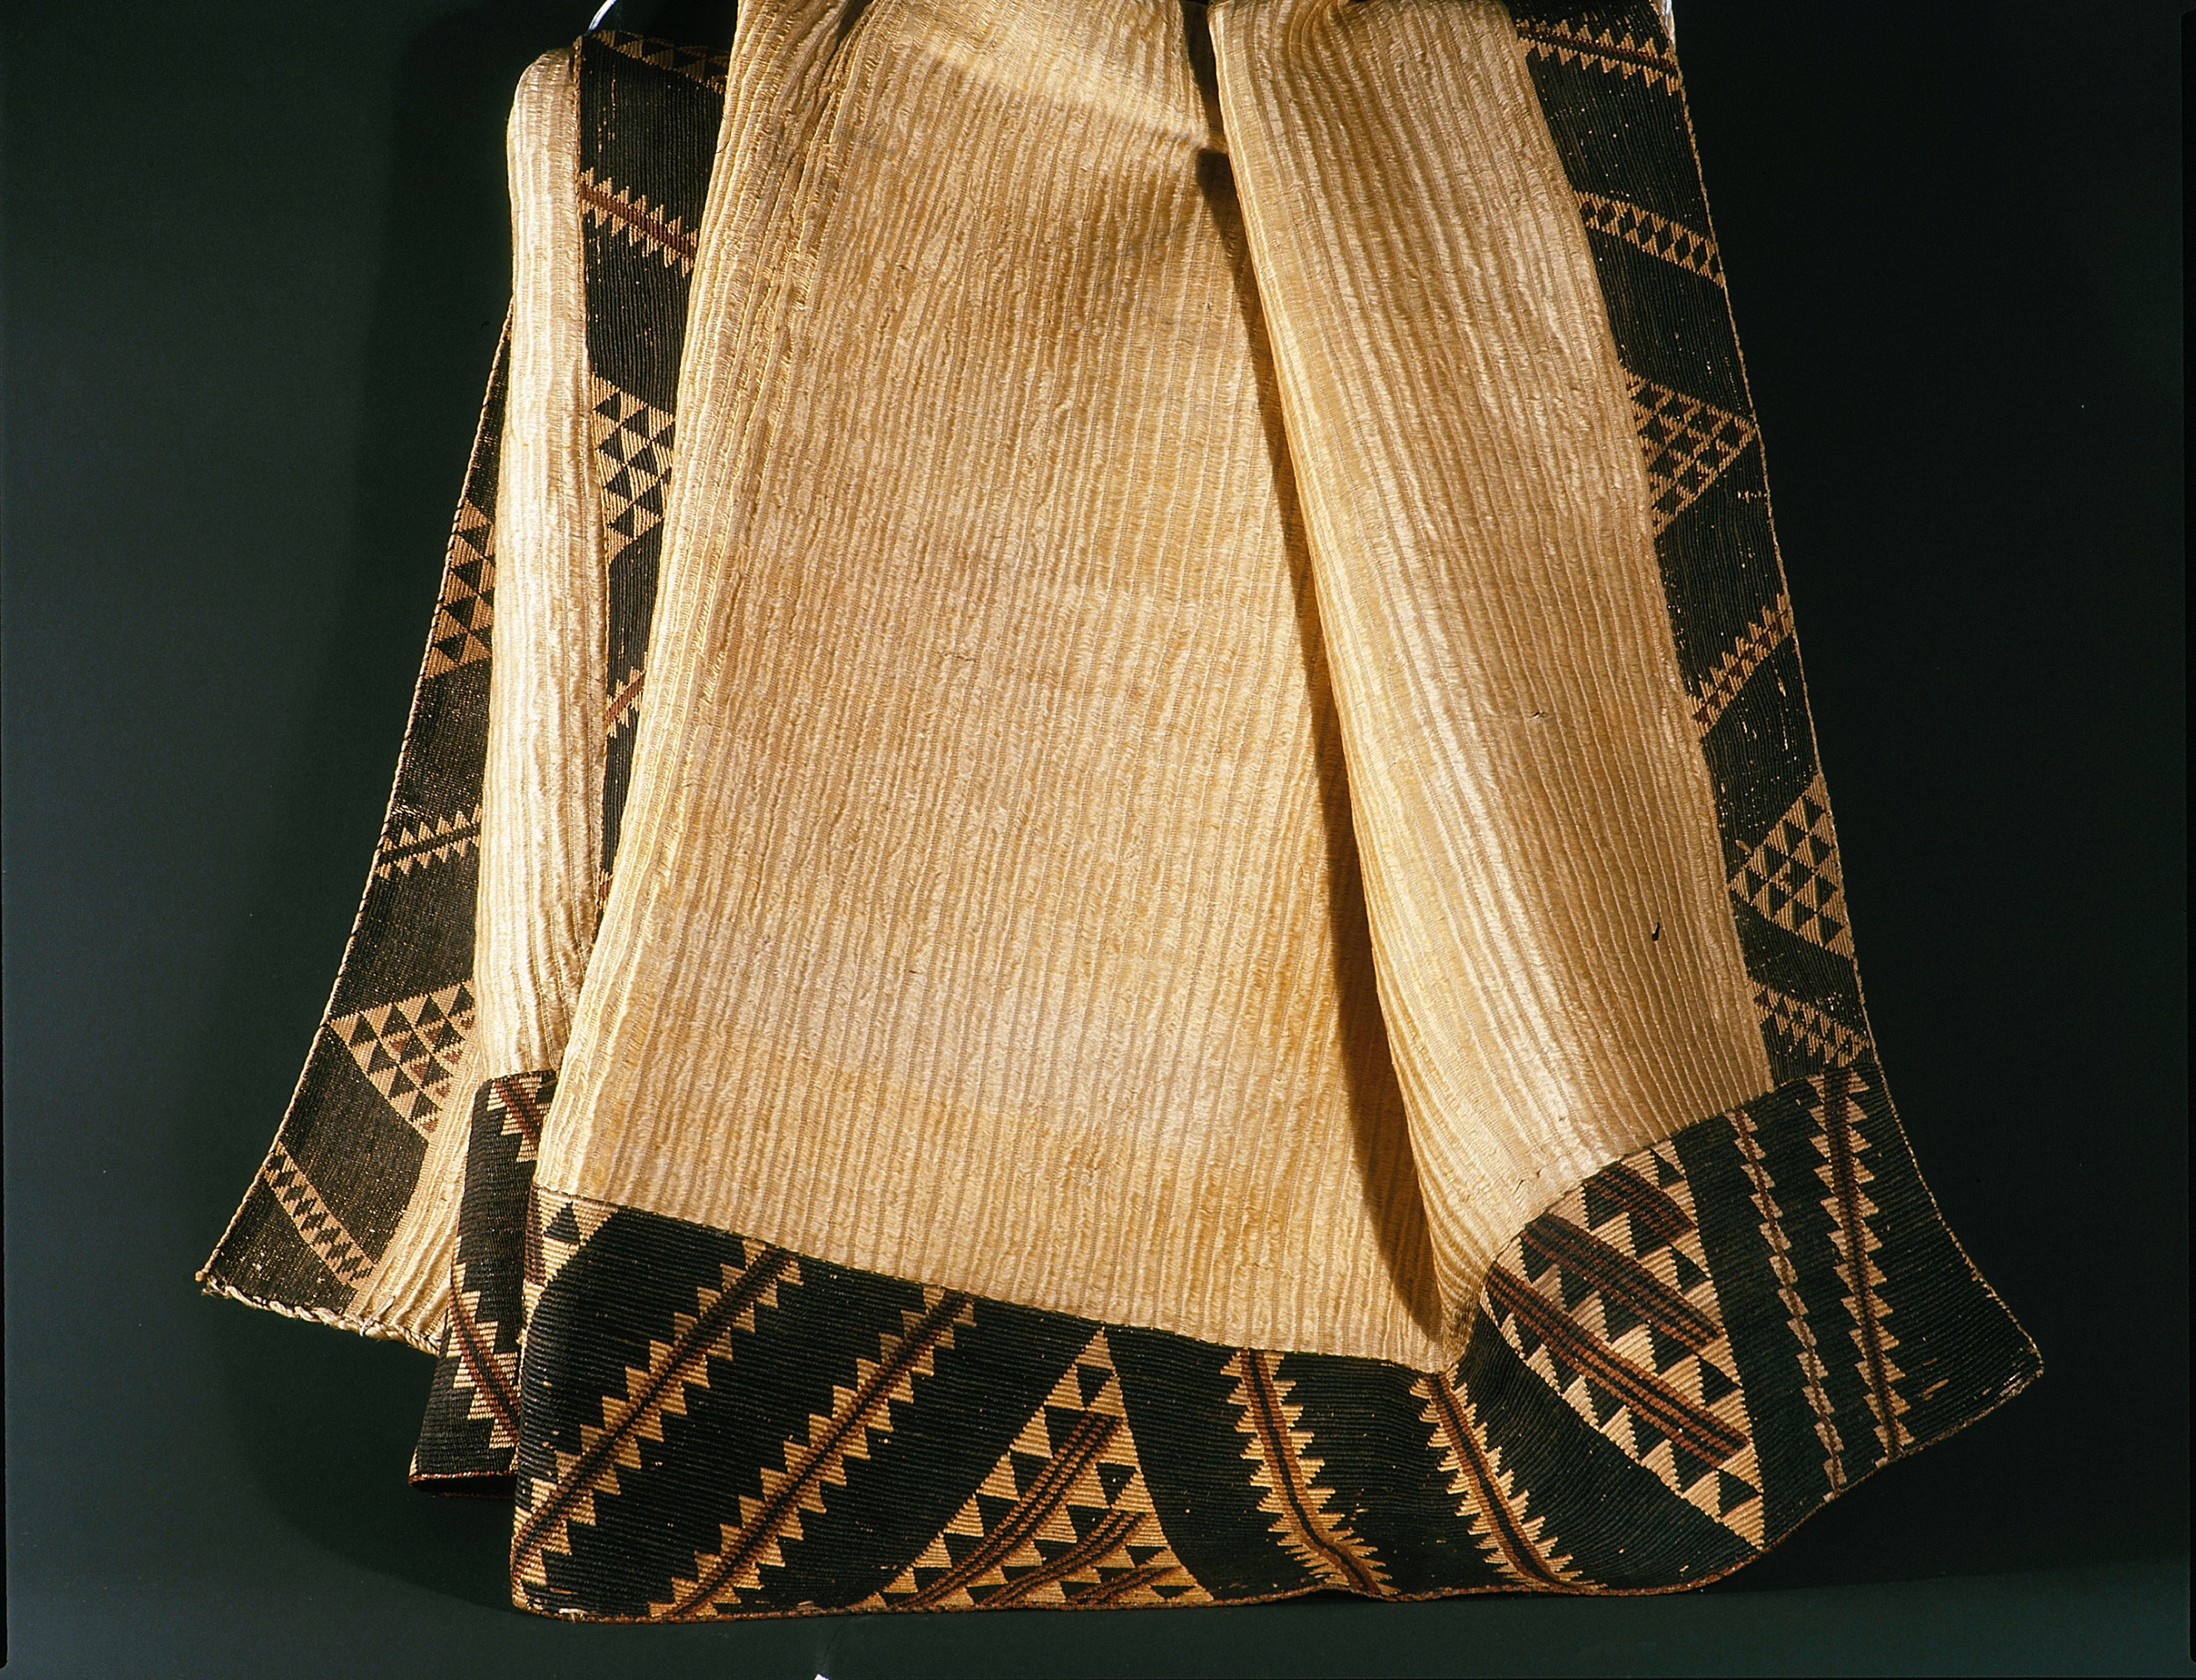 A prestigious kaitaka cloak made of softly beaten flax fibers. The tapestry border serves as a weight to pull the cloak into a comely draped shape when worn. Production of this type of cloak ceased around 1835. Taranaki.   Early 19th Century   Inv. #: 55424784 © Werner Forman Archive / Canterbury Museum, Christchurch